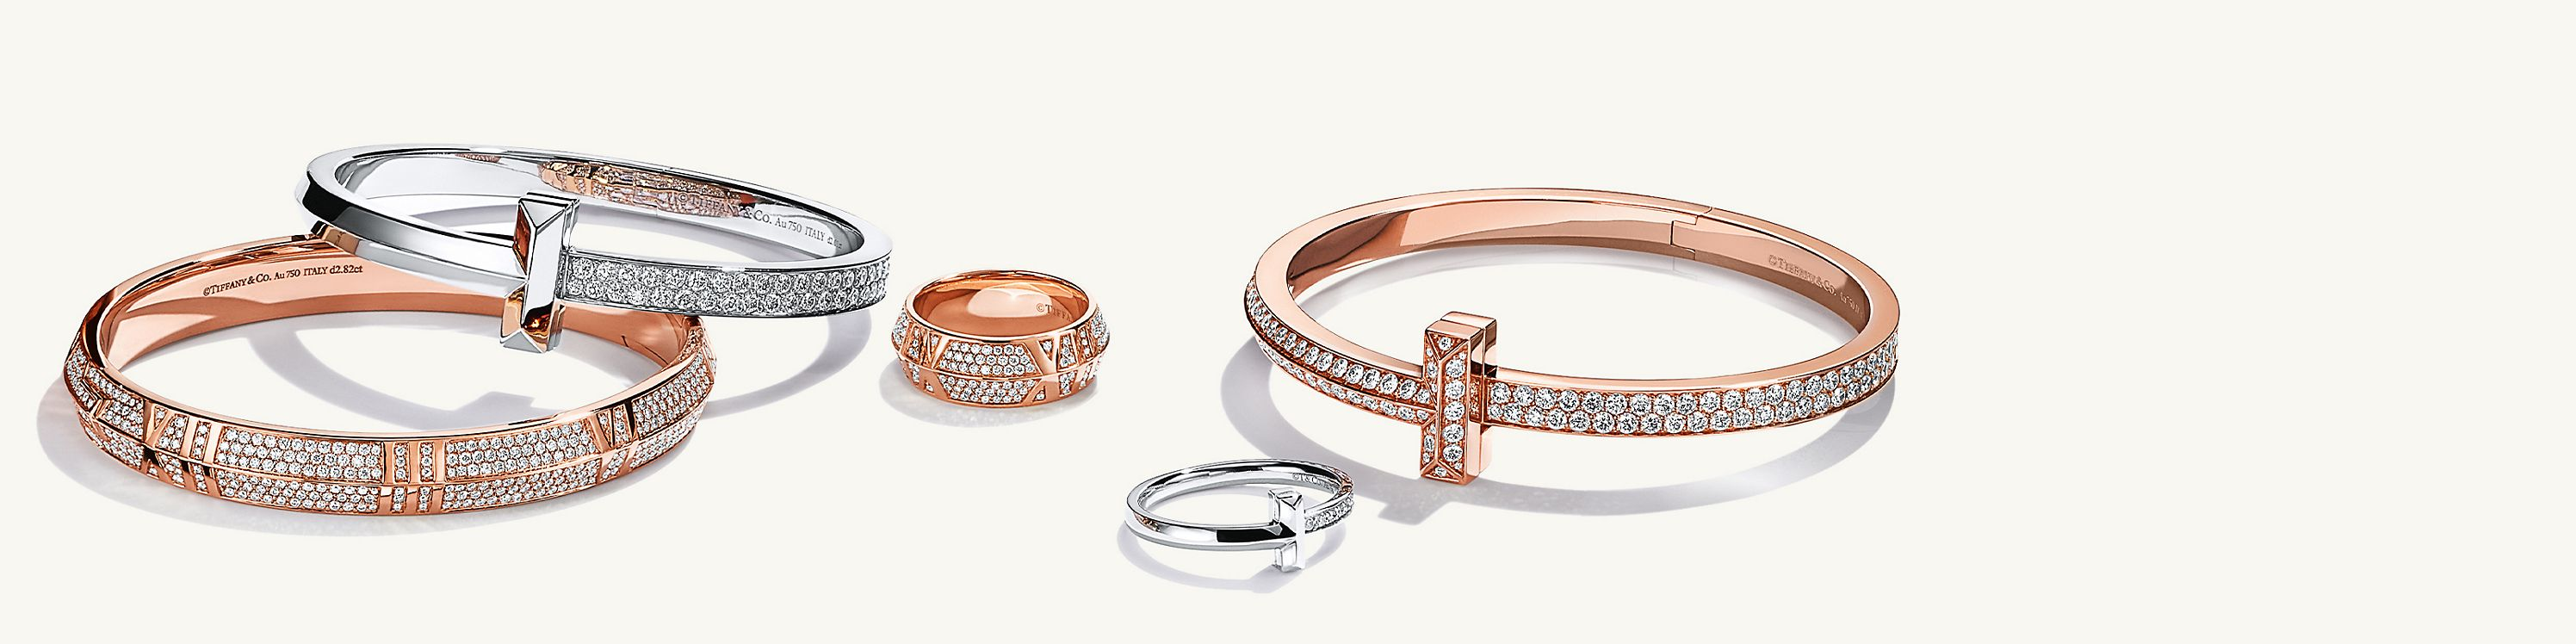 Shop New Tiffany & Co. Jewelry